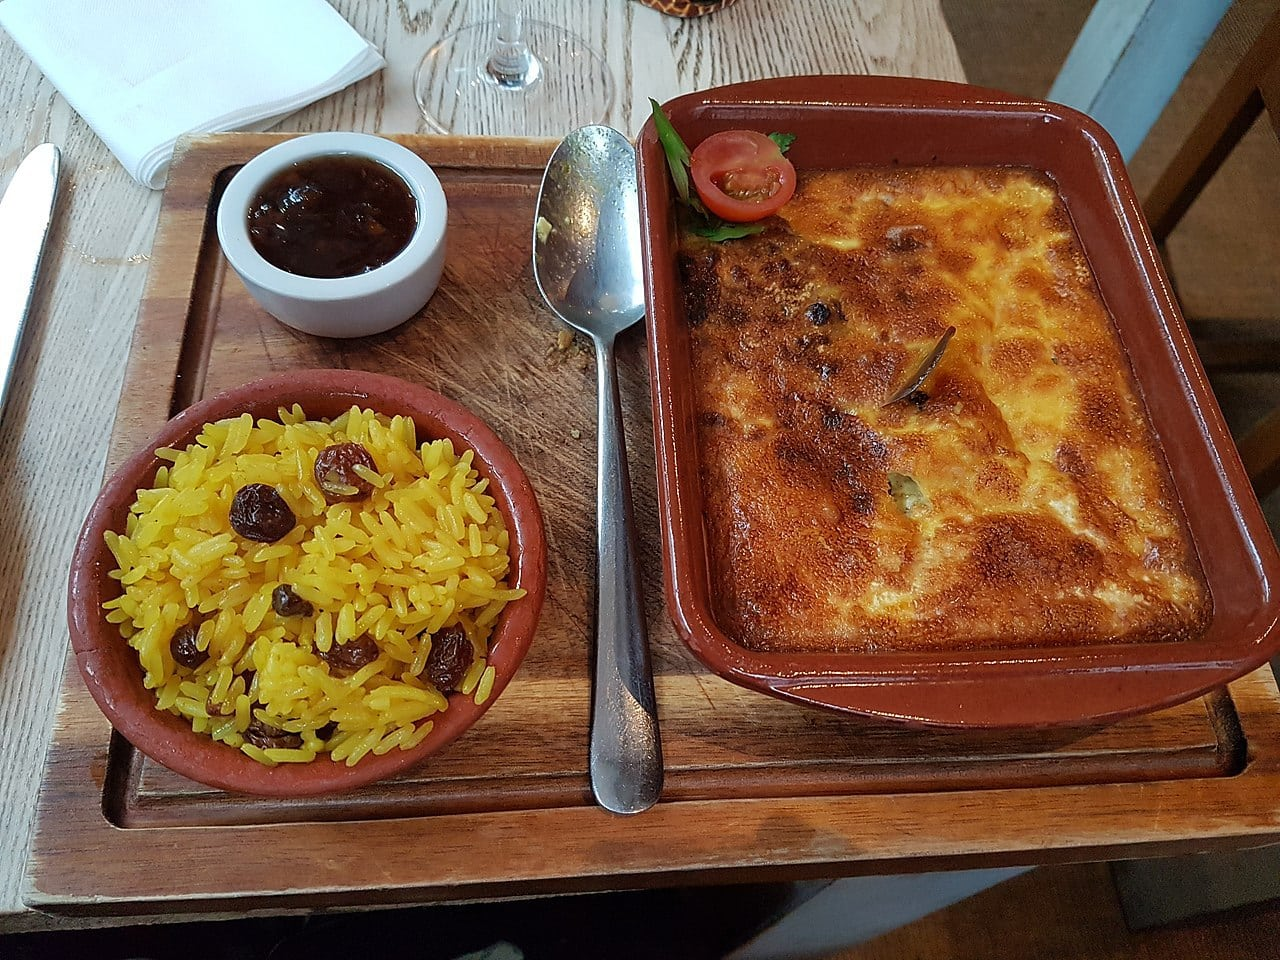 Bobotie with a side of yellow rice and some Mrs Ball's chutney. Wikipedia CharmaineZoe's Marvelous Melange (CC BY 2.0)